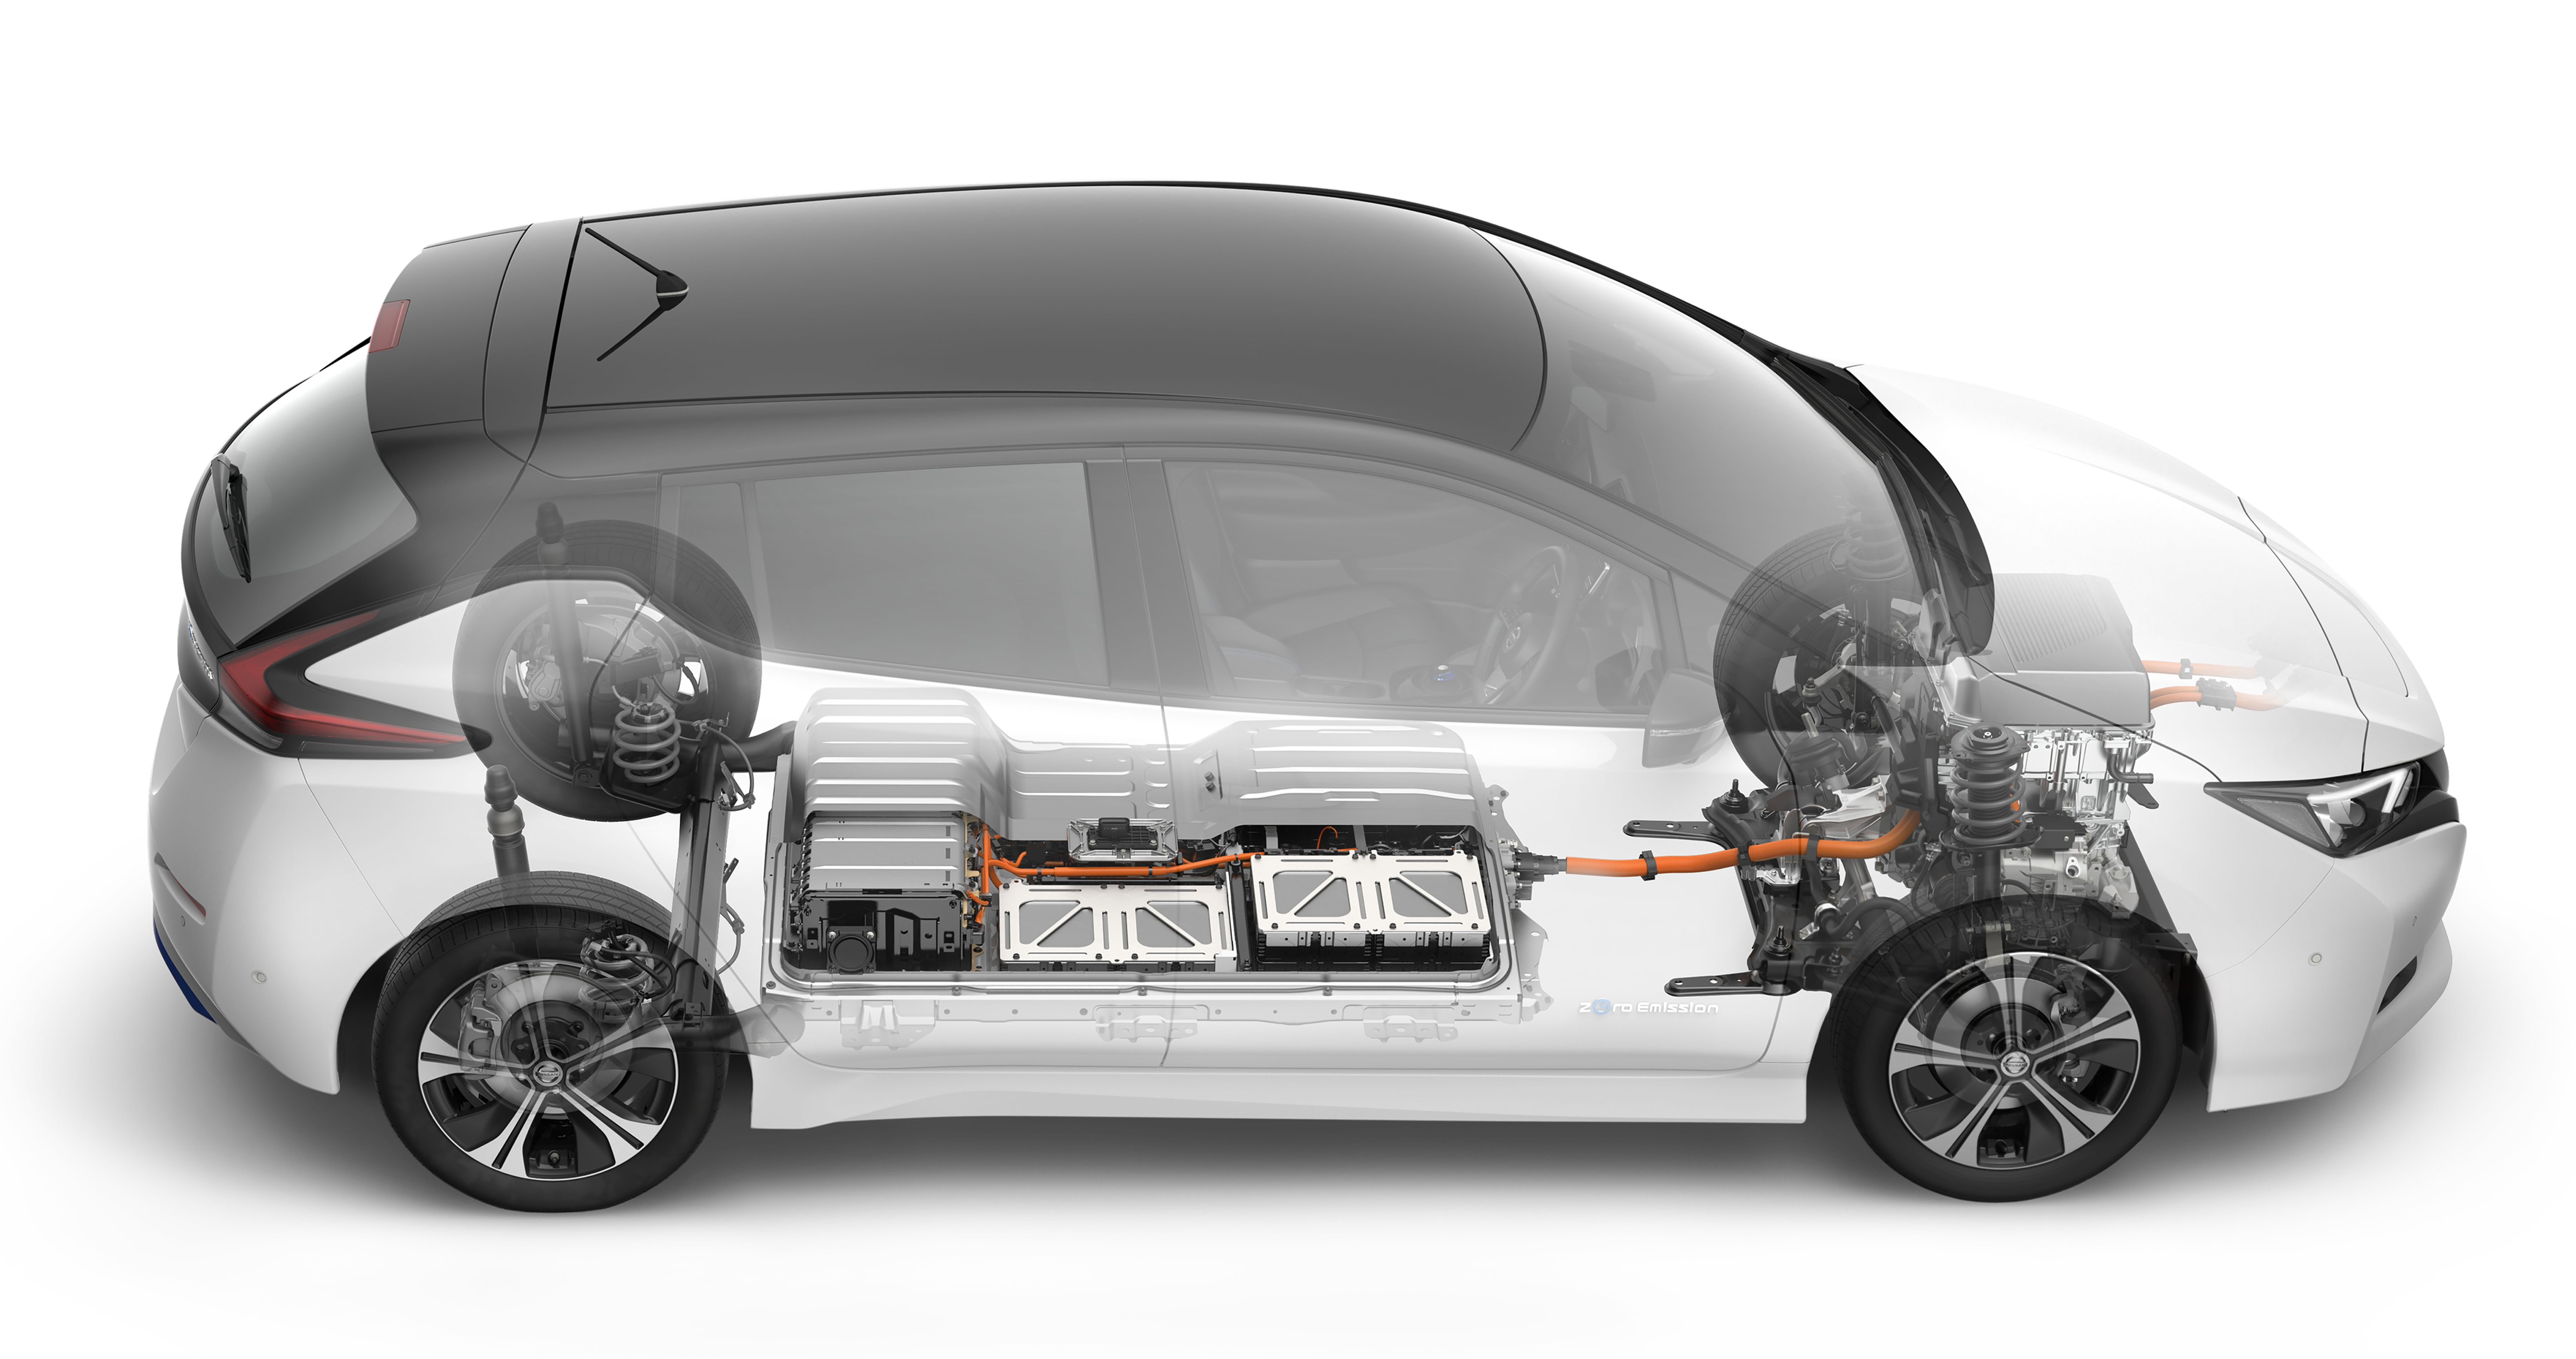 Toyota, Nissan, Honda, battery makers and Japan gov't to